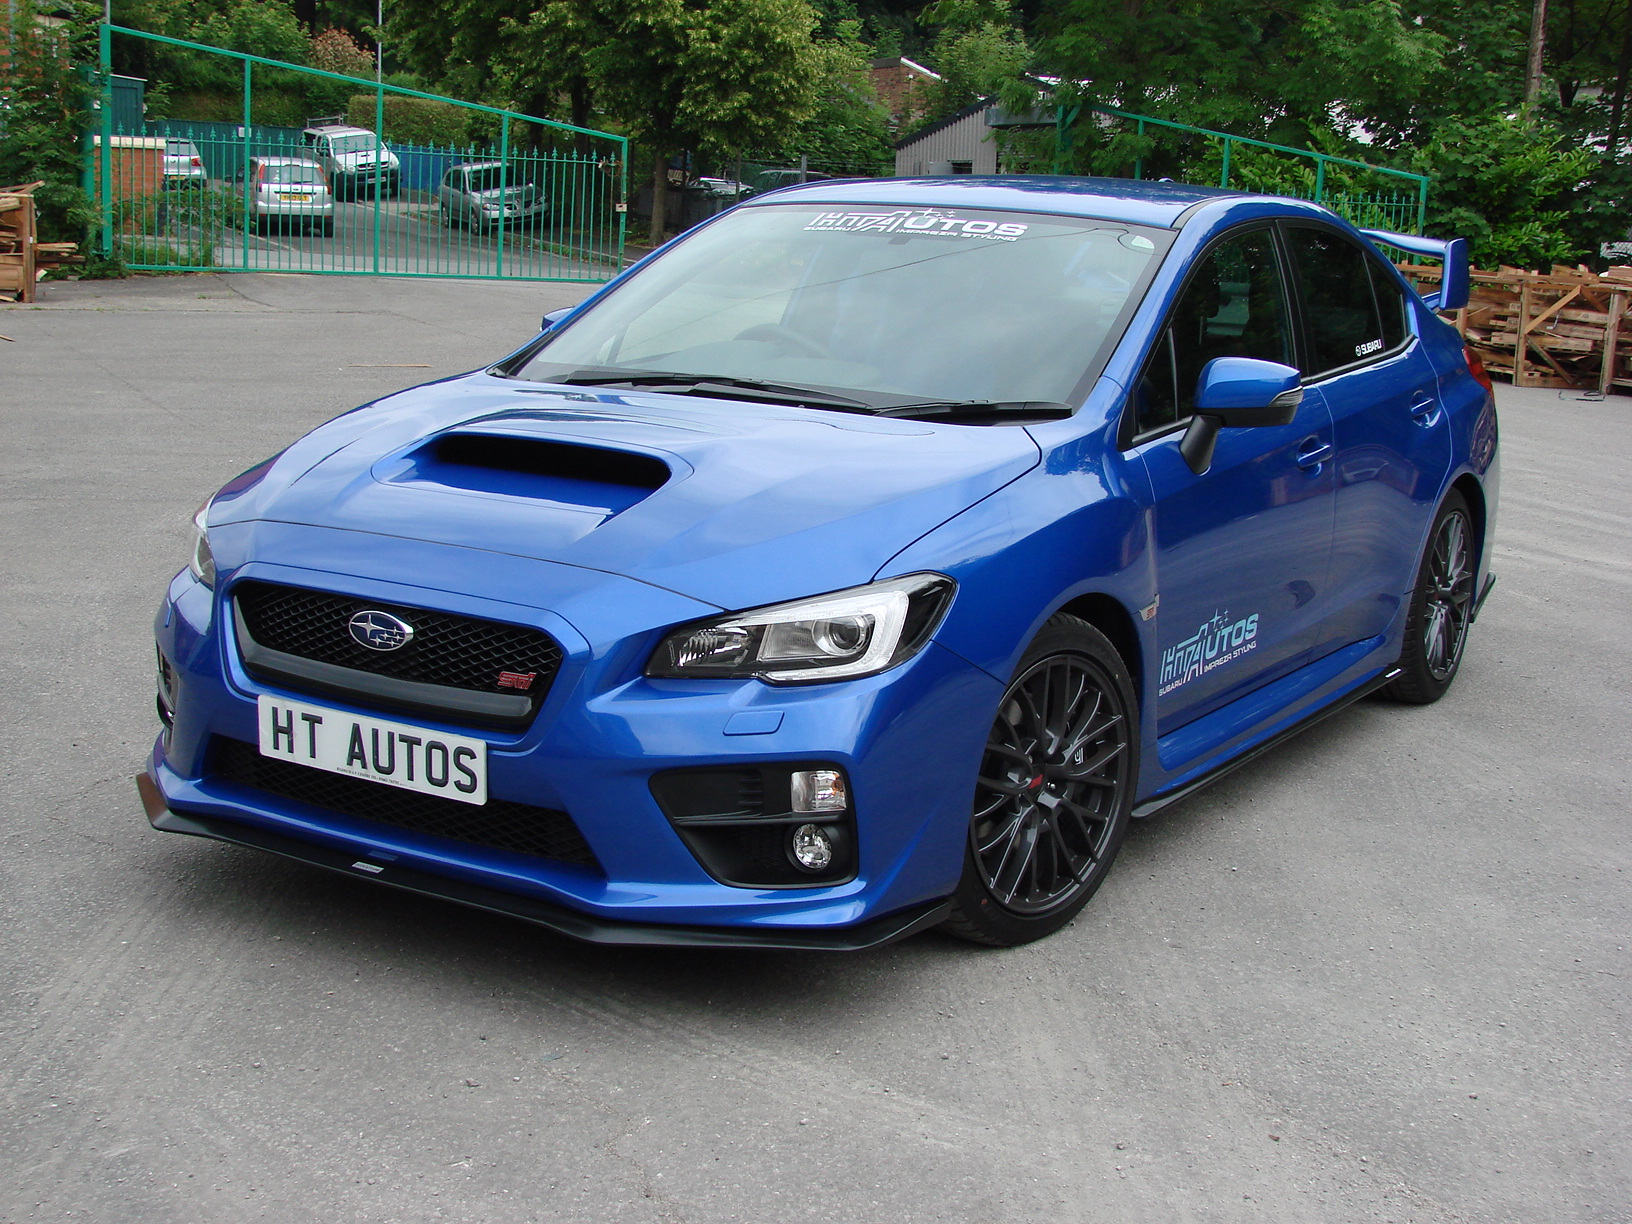 Subaru 2015 WRX STi Bottomline body kit / Lip kit.